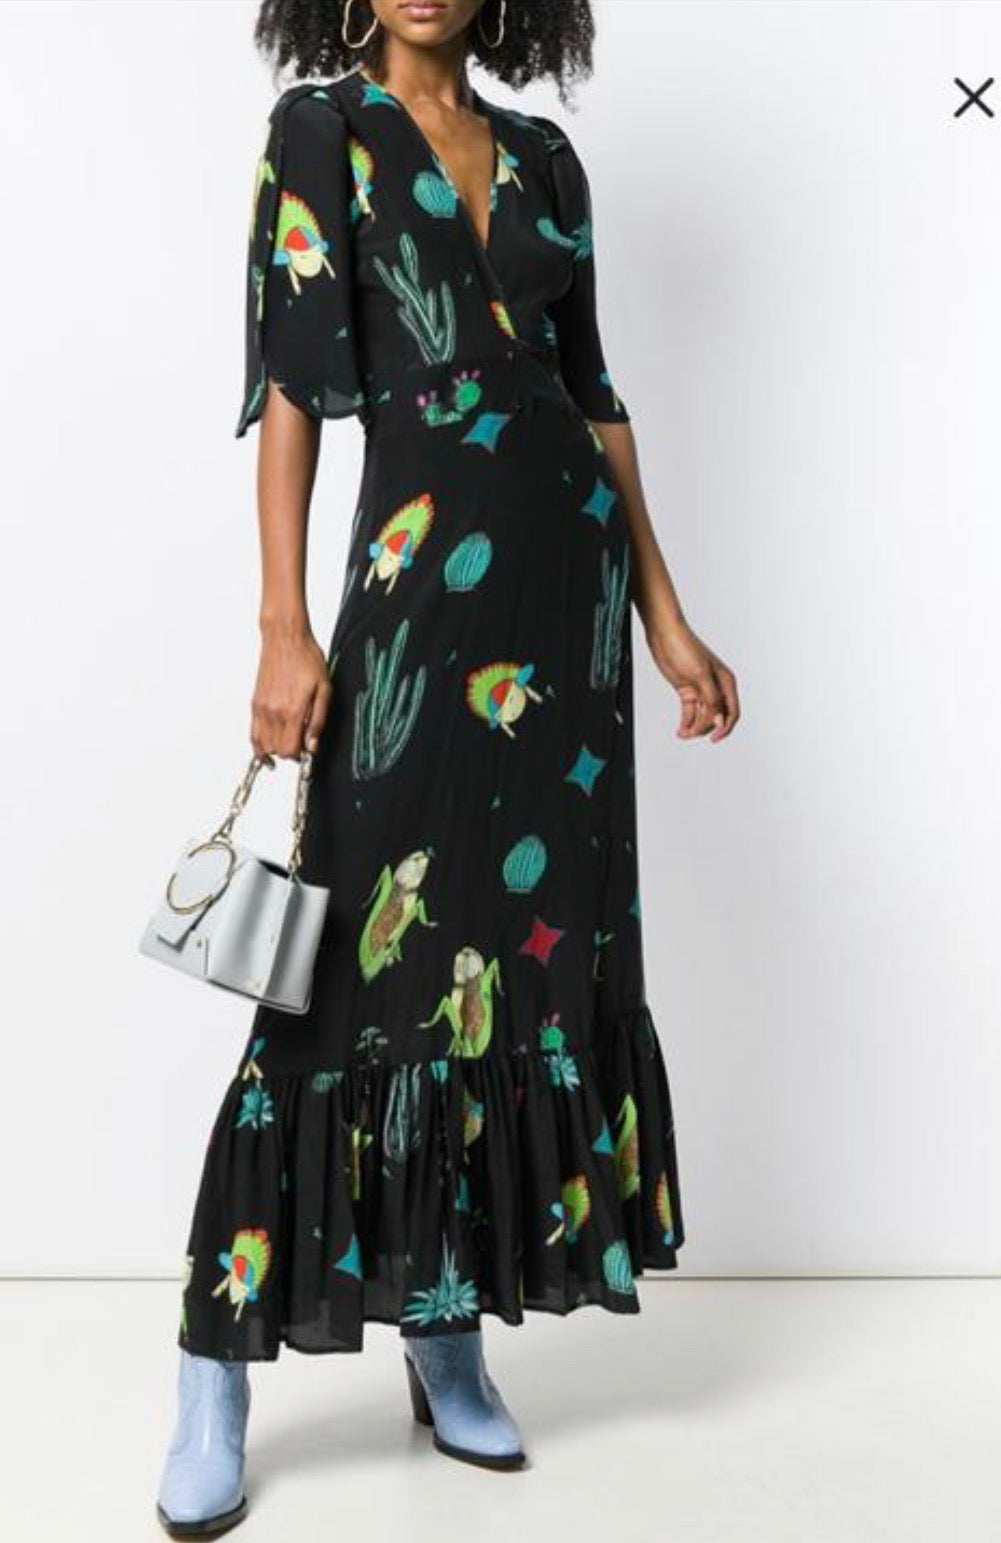 Jessie western cactus /corn maiden dress